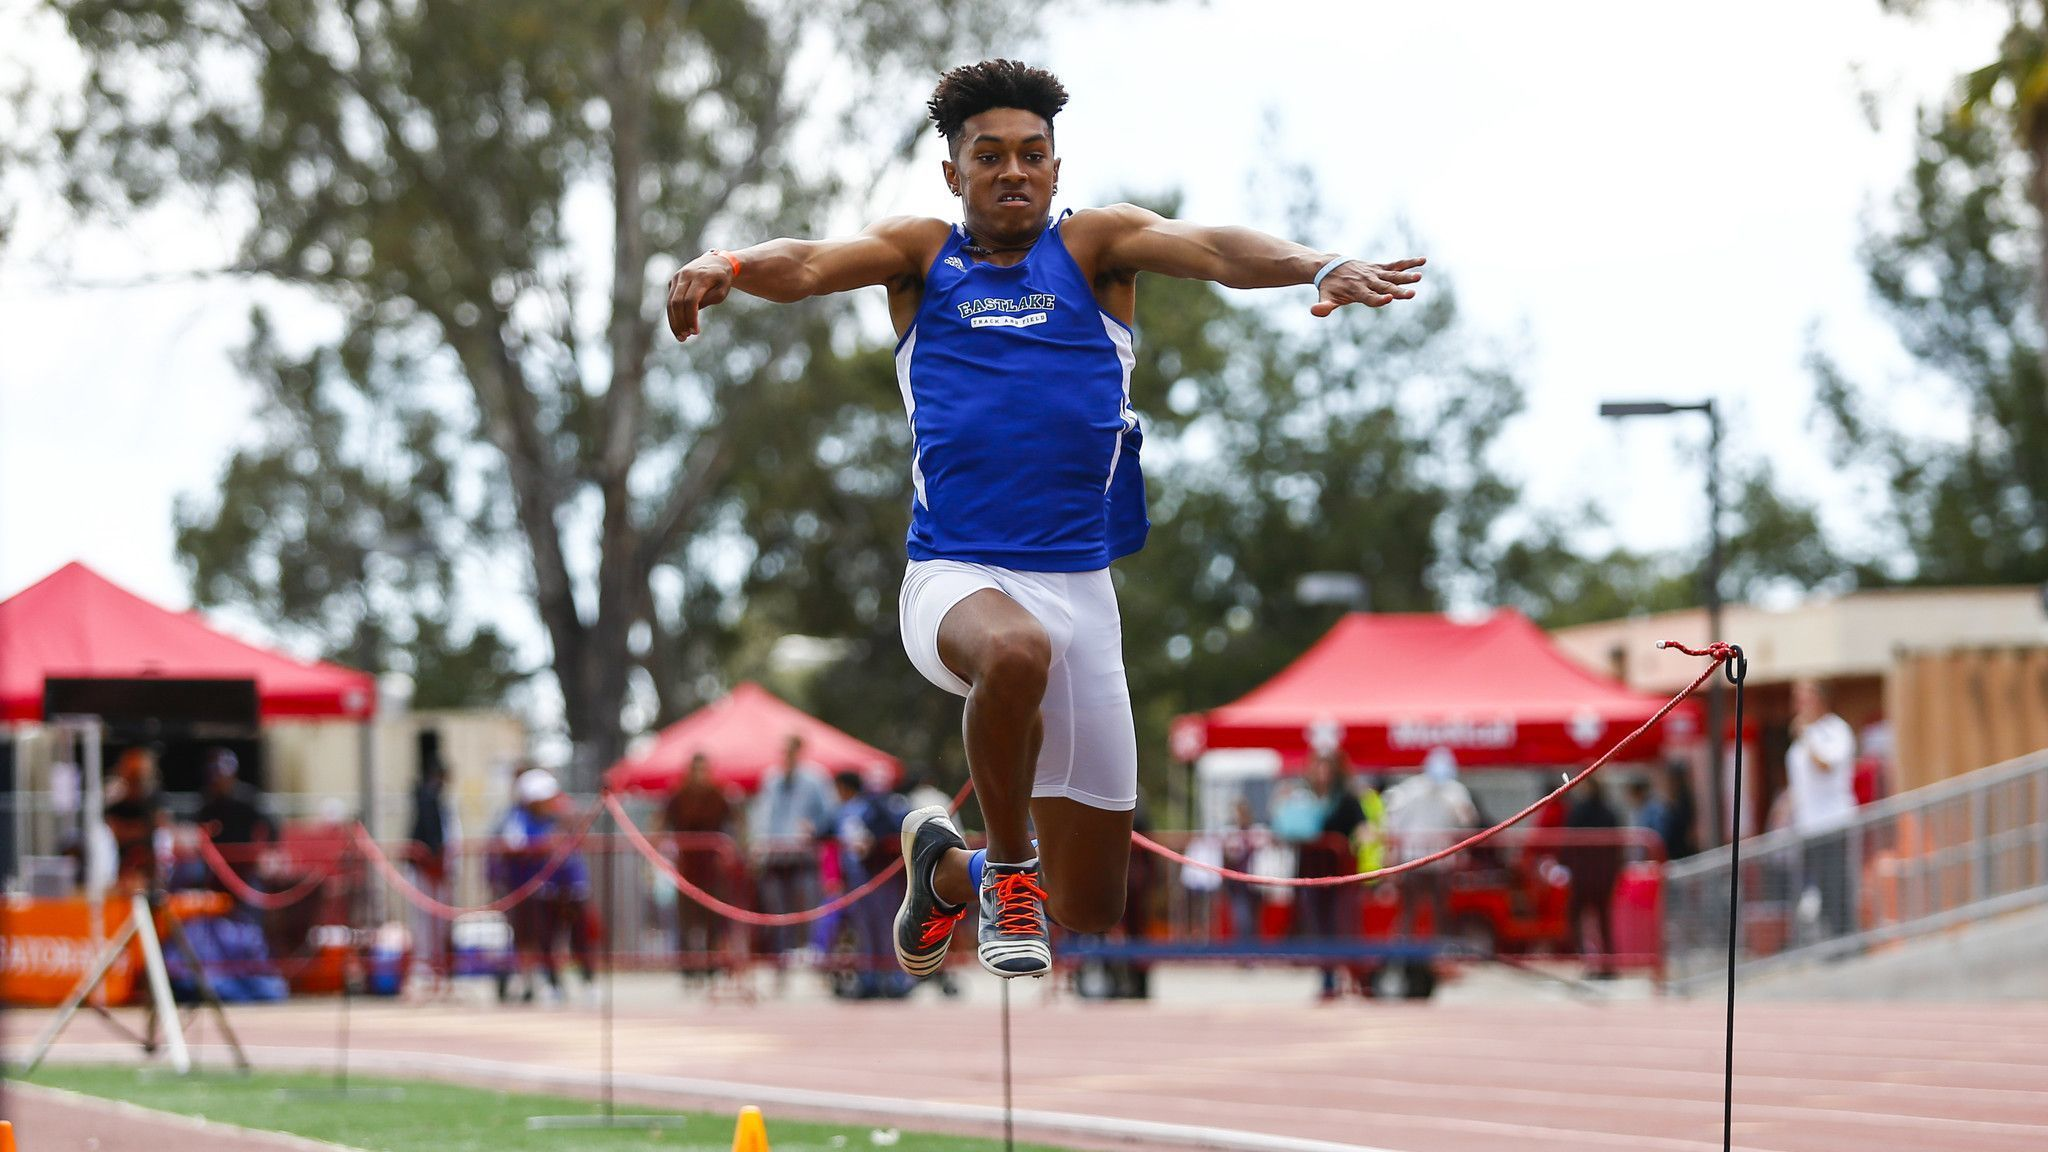 Eastlake's Jalyn Jackson completes a run in the boys triple jump.